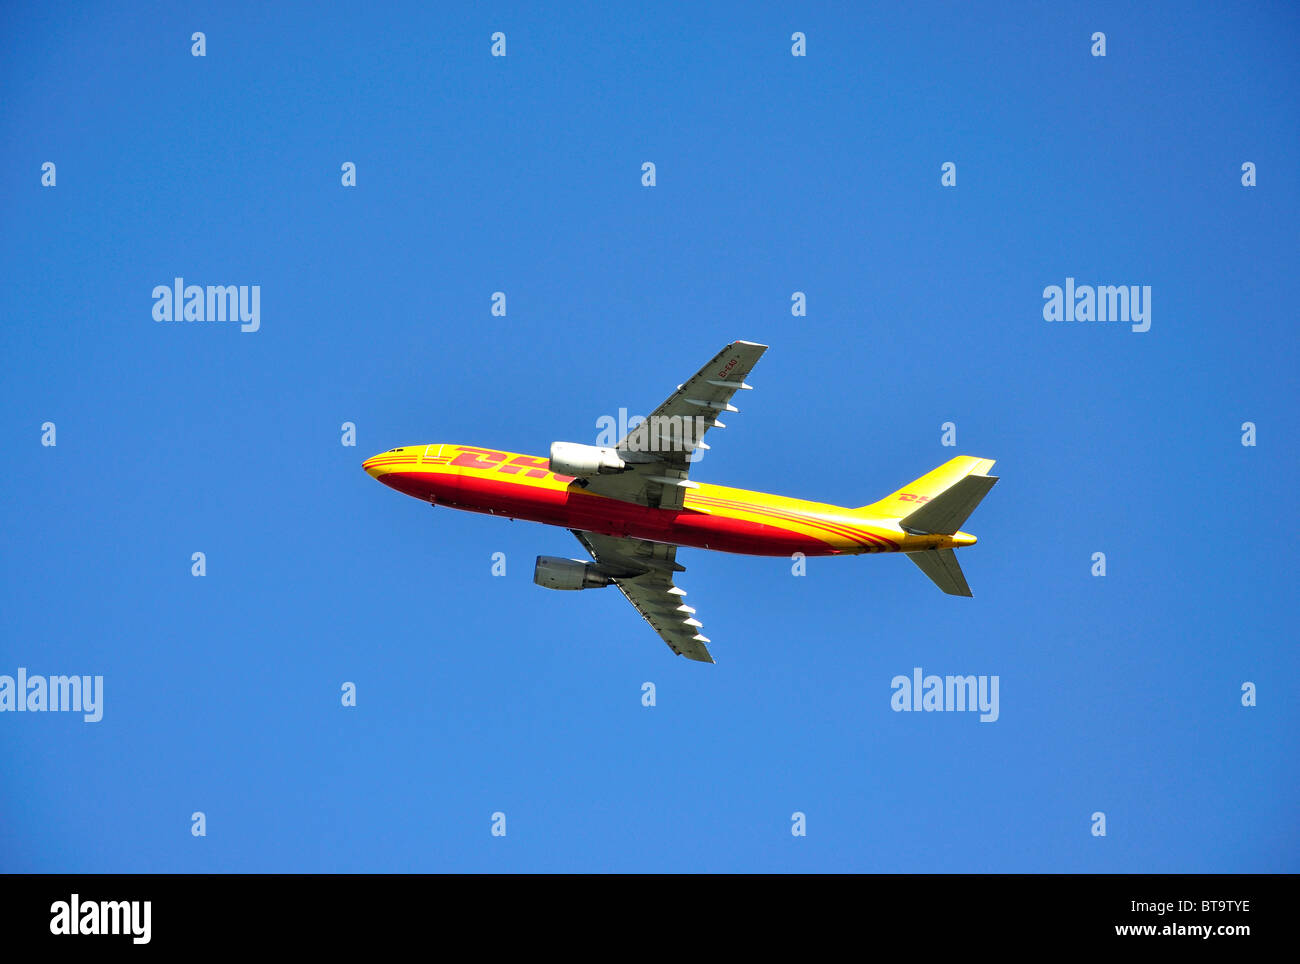 DHL Cargo Boeing 767 aircraft taking off, Heathrow Airport